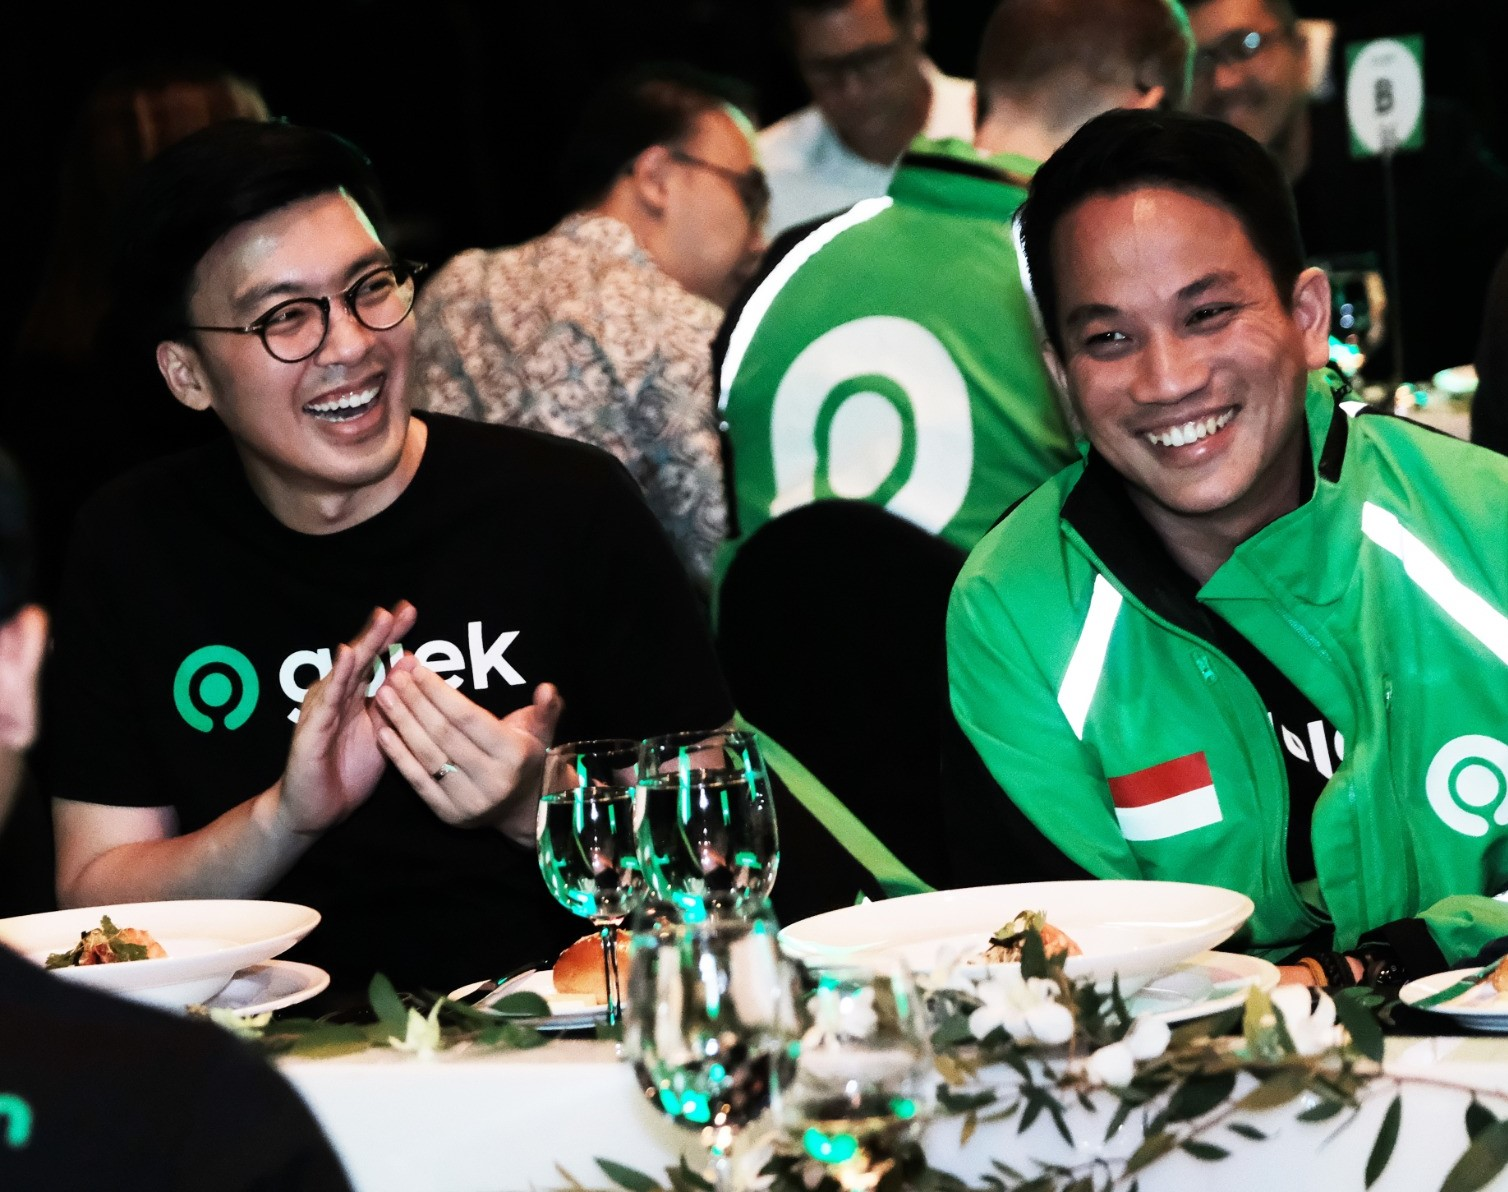 Gojek quietly lays the groundwork for its digital banking ambitions